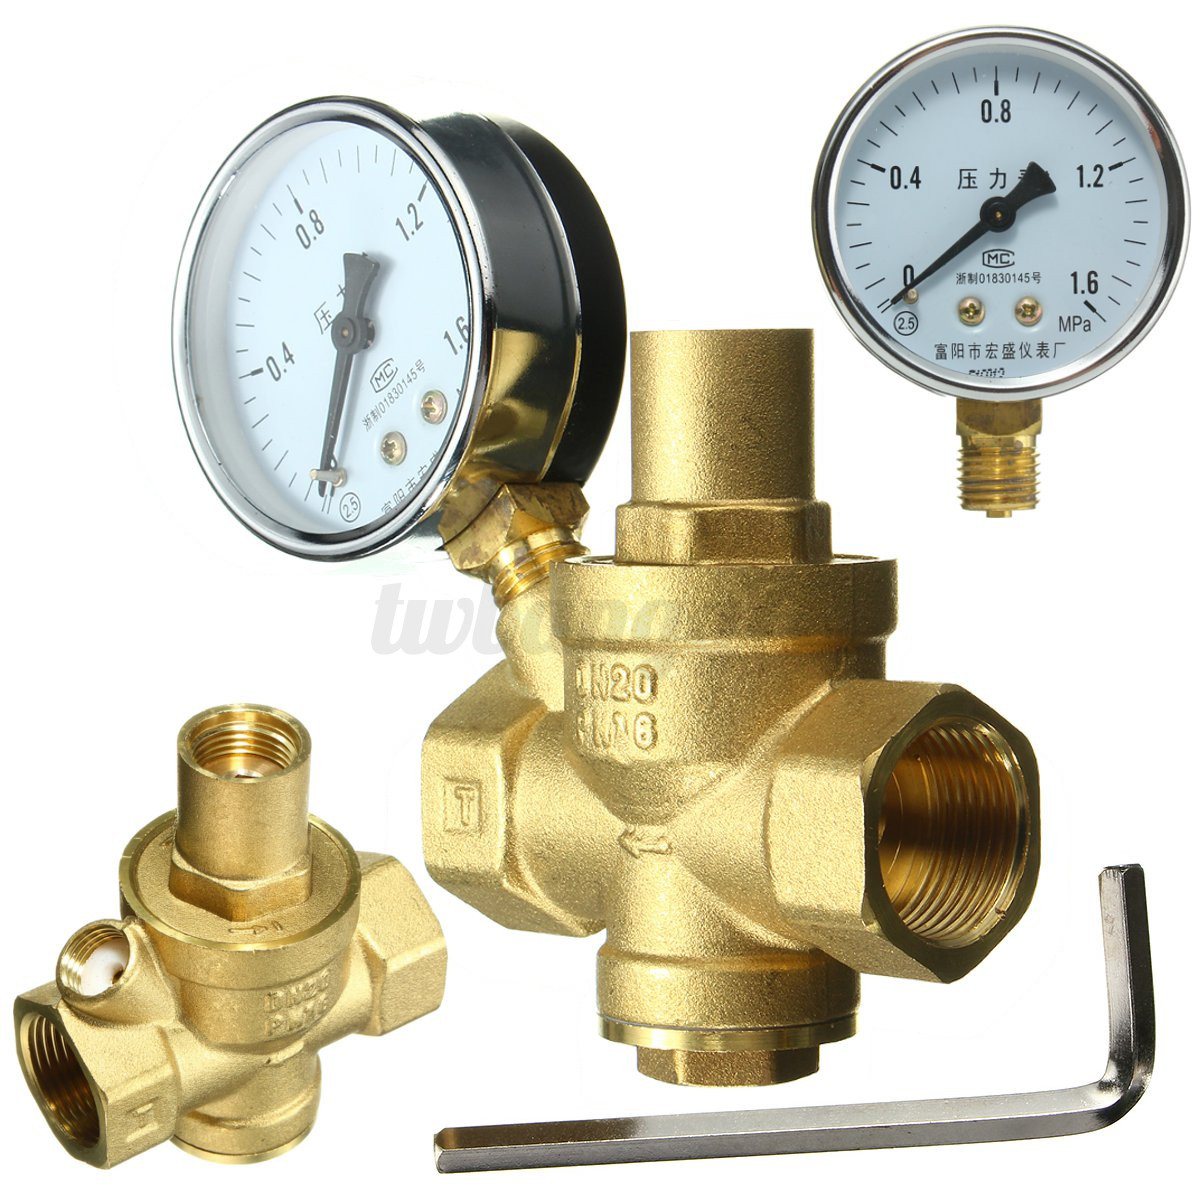 dn20 3 4 39 39 bspp brass water pressure reducing valve with. Black Bedroom Furniture Sets. Home Design Ideas